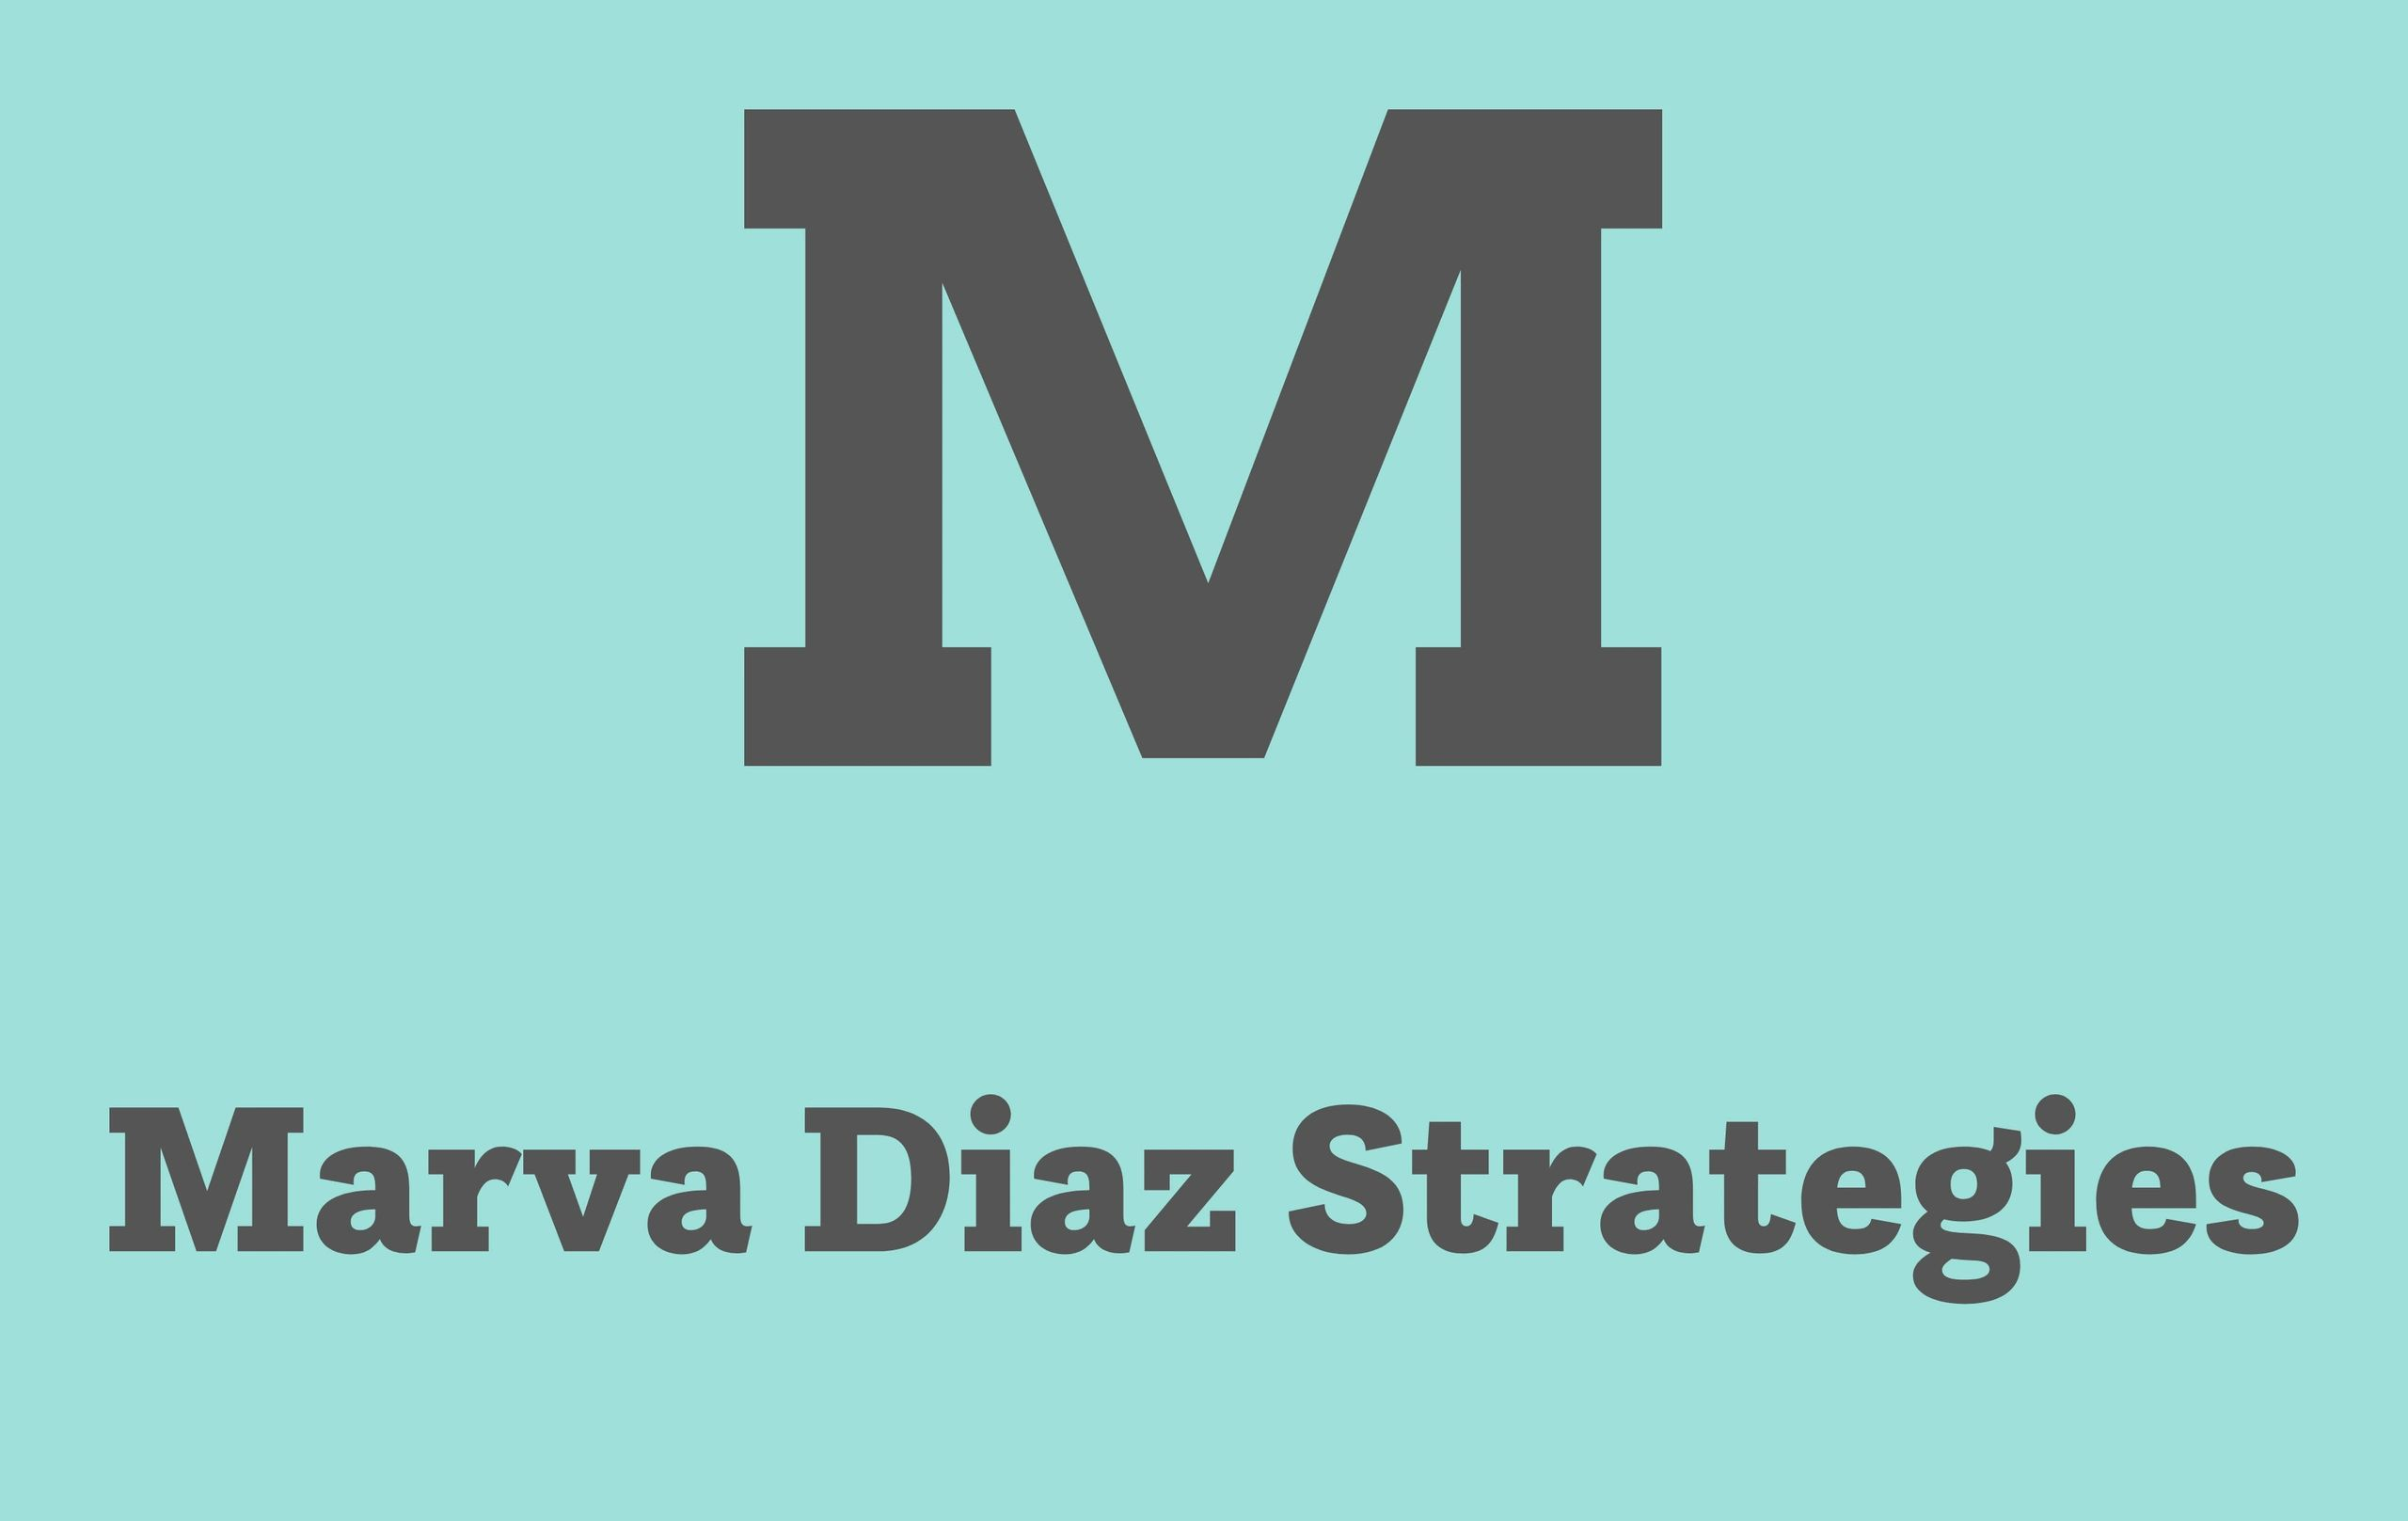 Marva Diaz Strategies